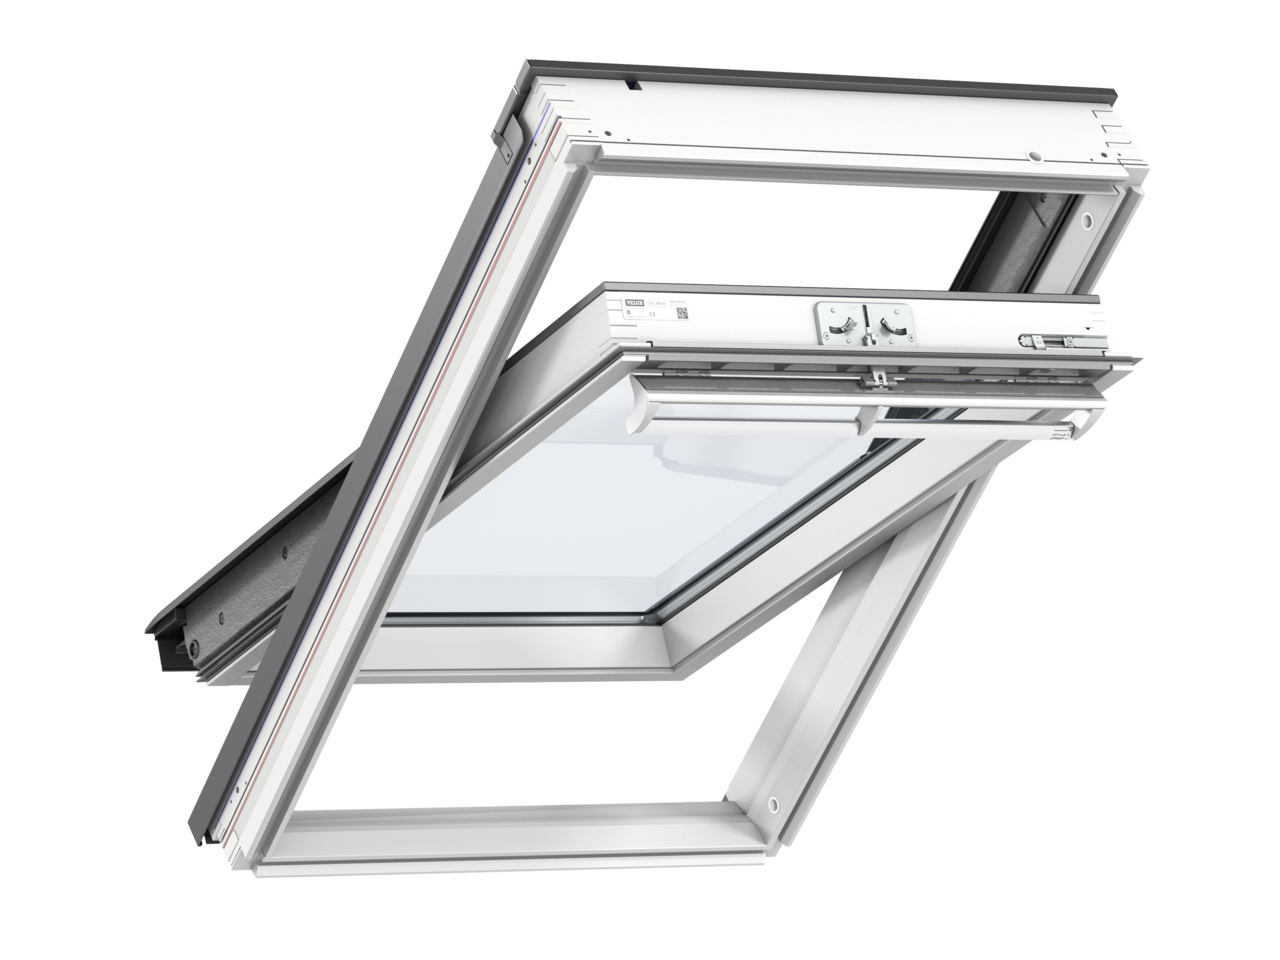 Velux GGL SK06 1140 x 1180mm Centre Pivot 62Pane Roof Window - White Painted